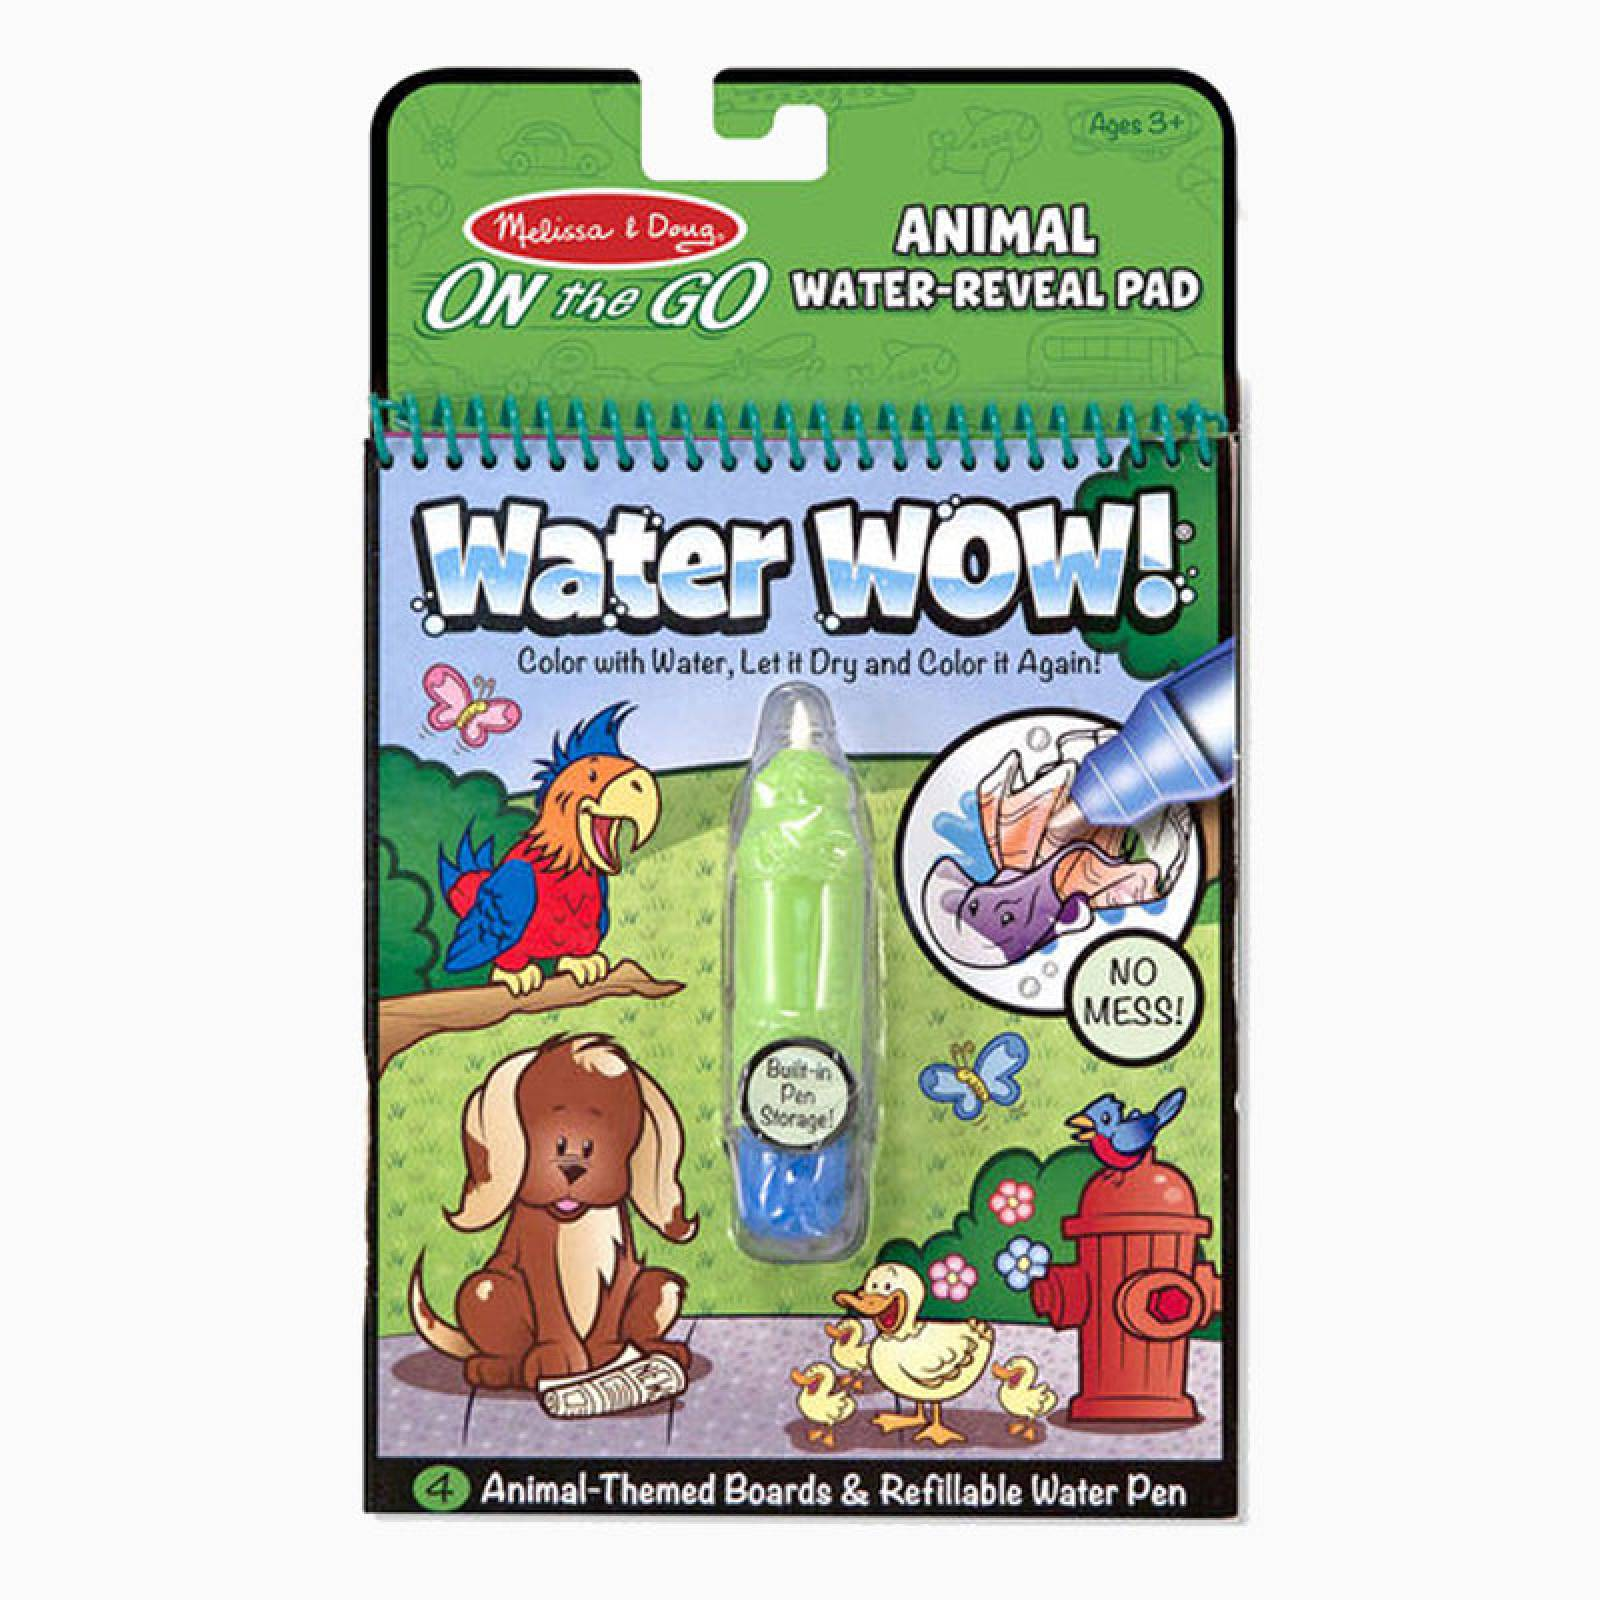 Water Wow! Animals - On the Go Travel Activity 3+